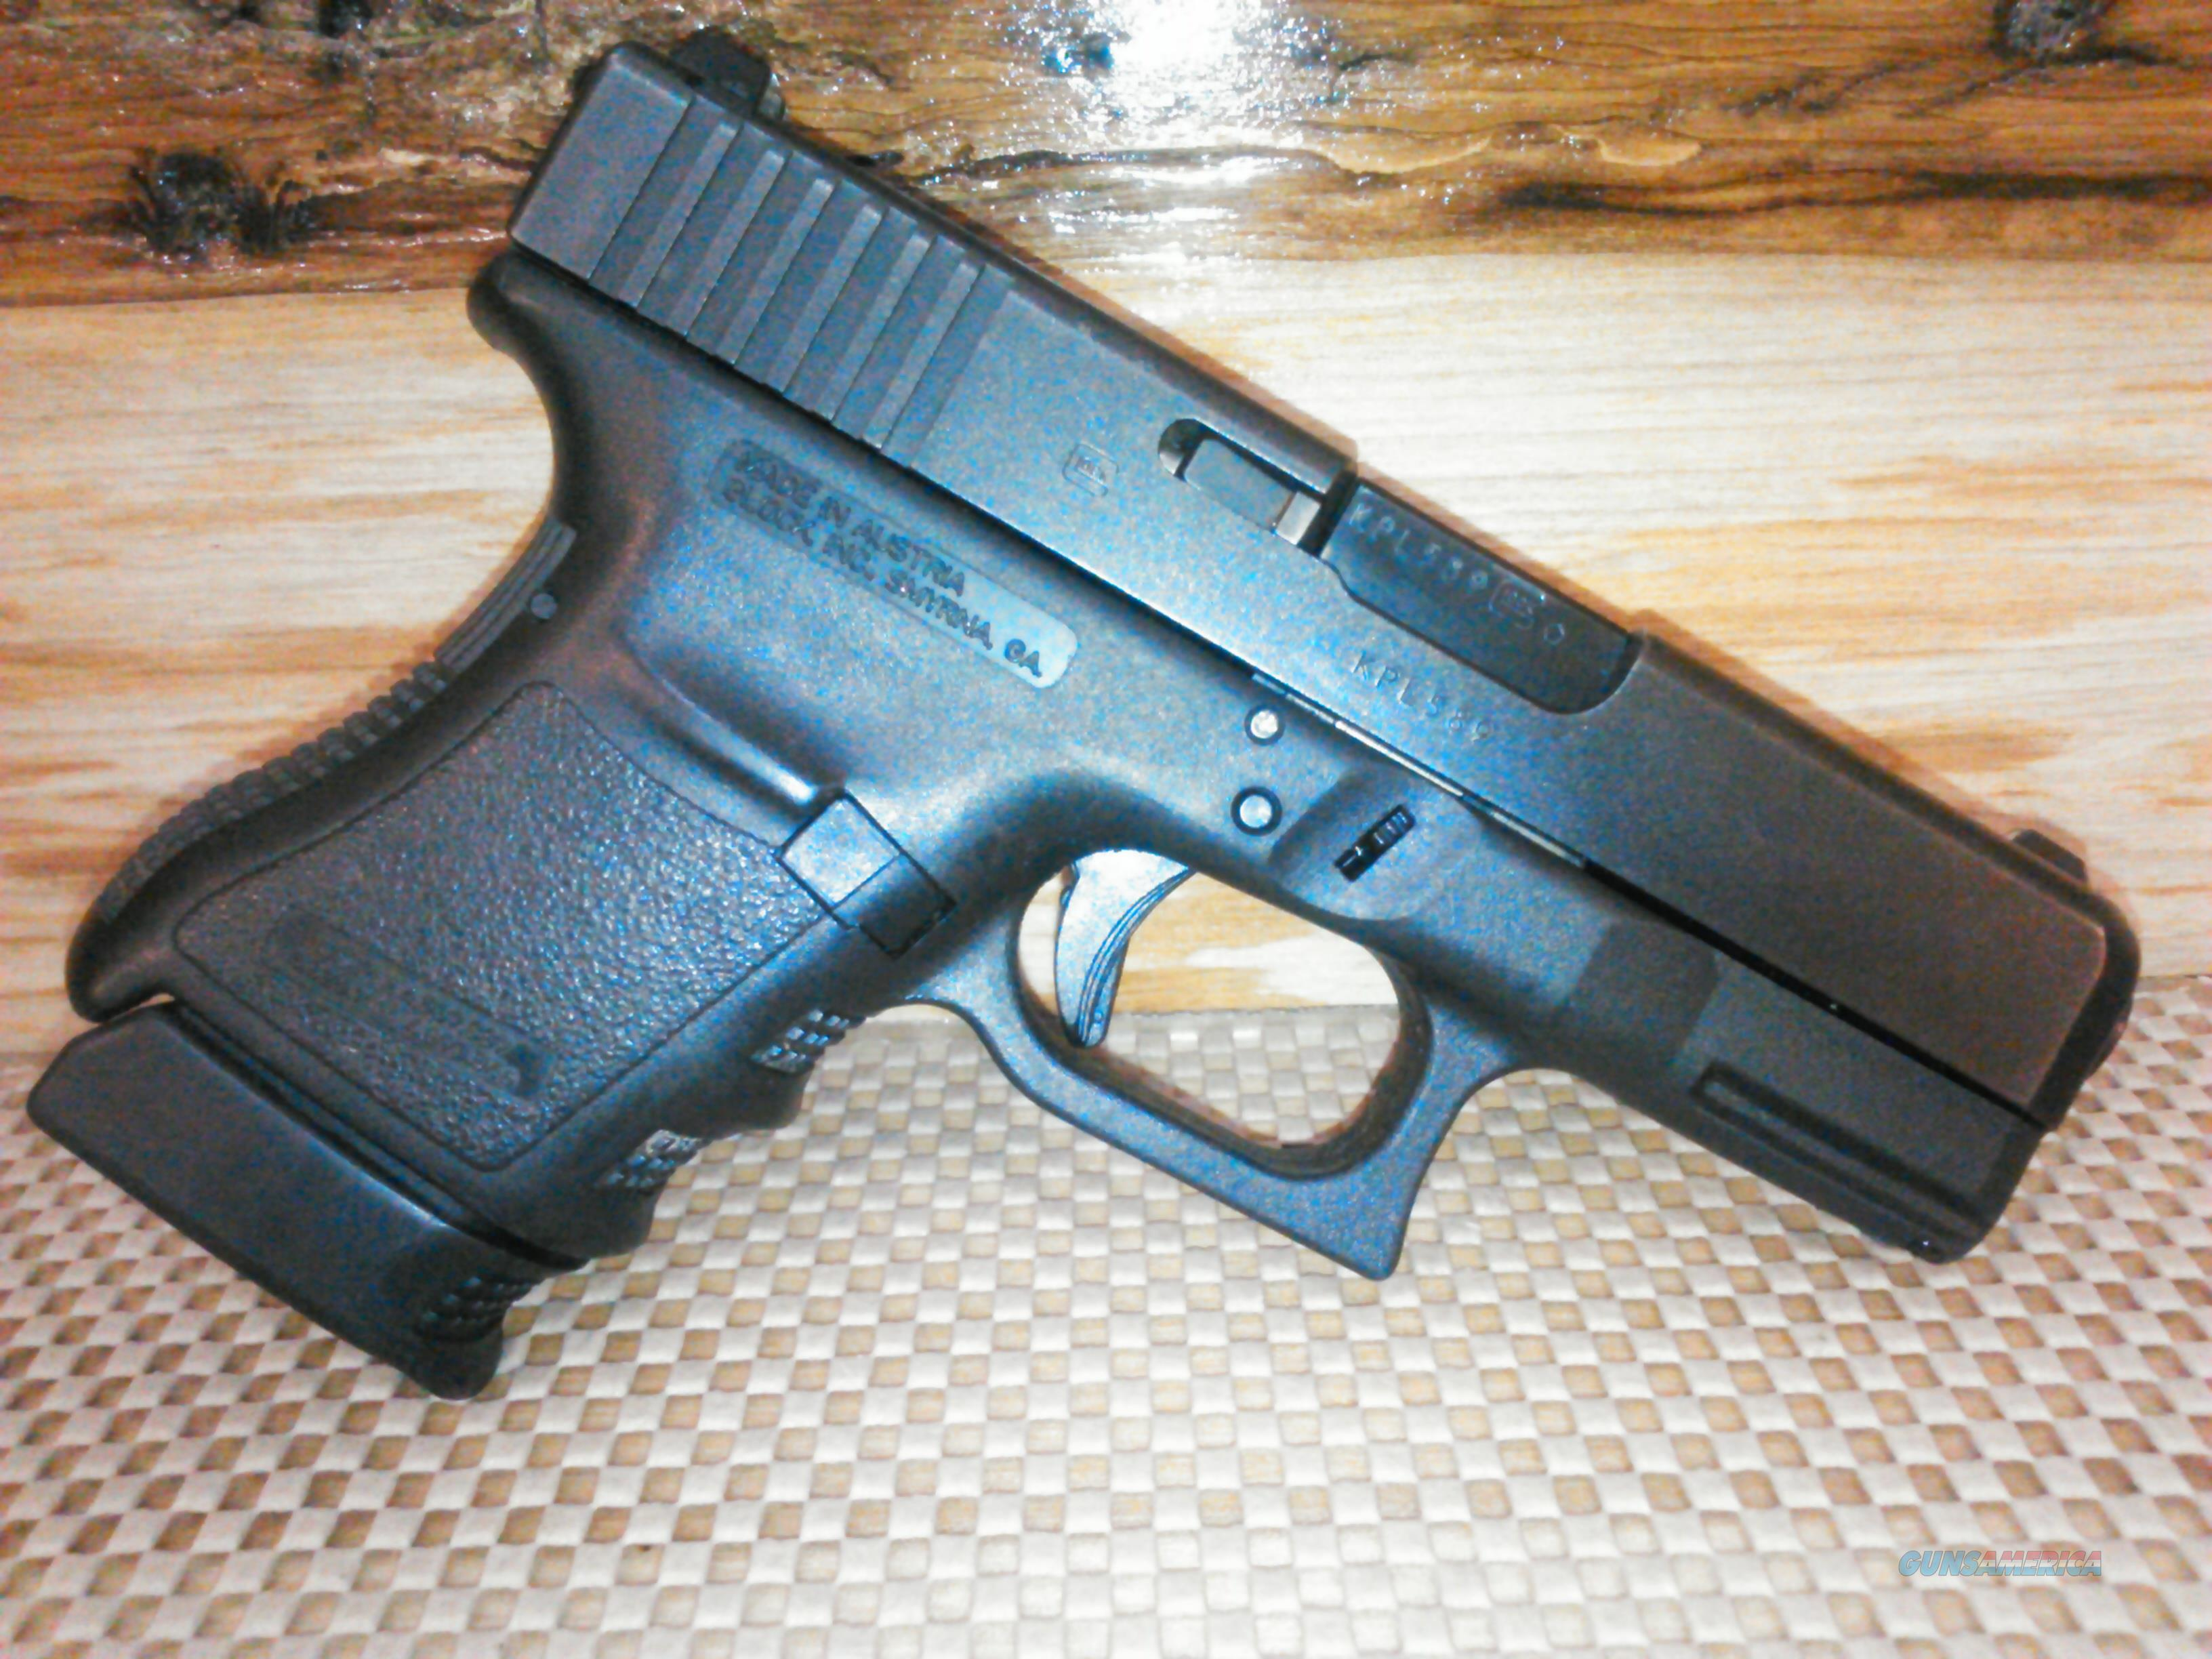 GLOCK 30 GEN3  45ACP  2-10RD MAGS NIGHT SIGHTS, FREE SHIPPING NO CC FEE (smith, ruger, colt)  Guns > Pistols > Glock Pistols > 29/30/36